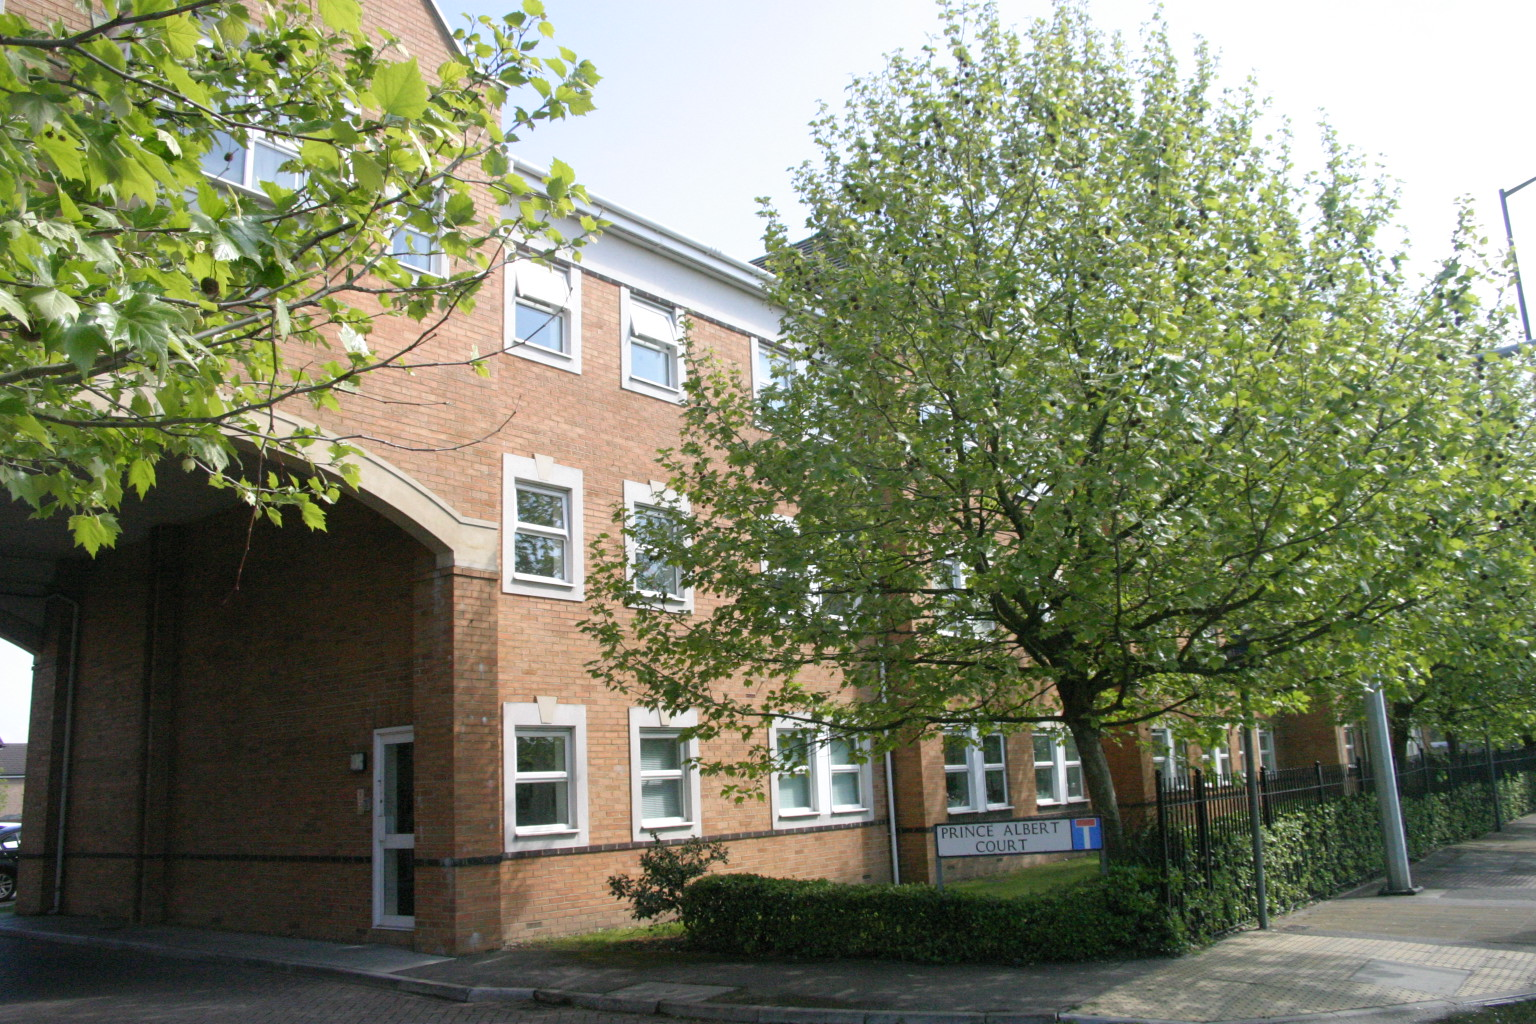 2 Bedroom First Floor Apartment, Sunbury